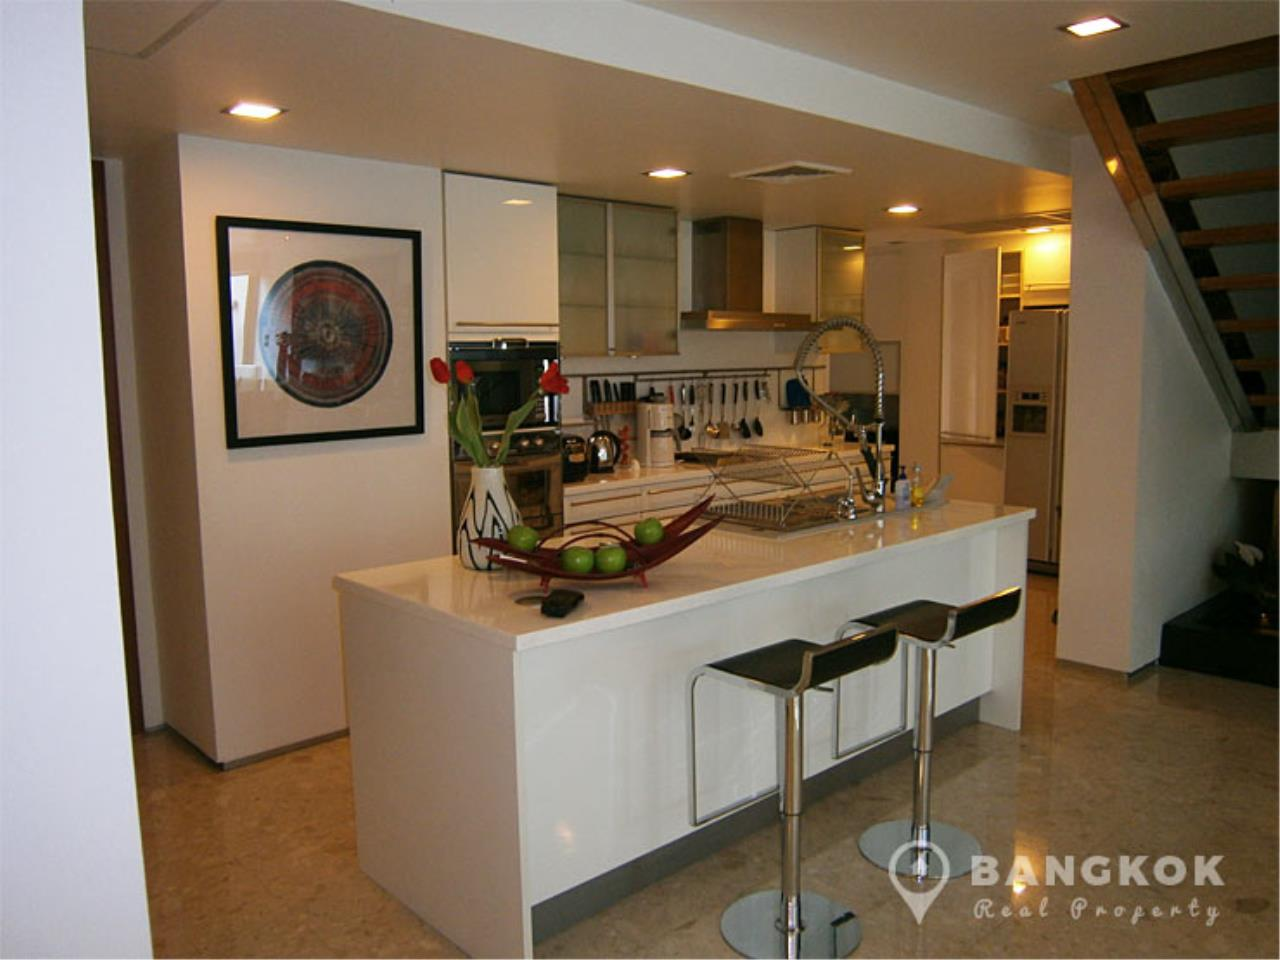 Bangkok Real Property Agency's Ficus Lane | A Fabulous Spacious 3 Bed 4 Bath Duplex near BTS 37